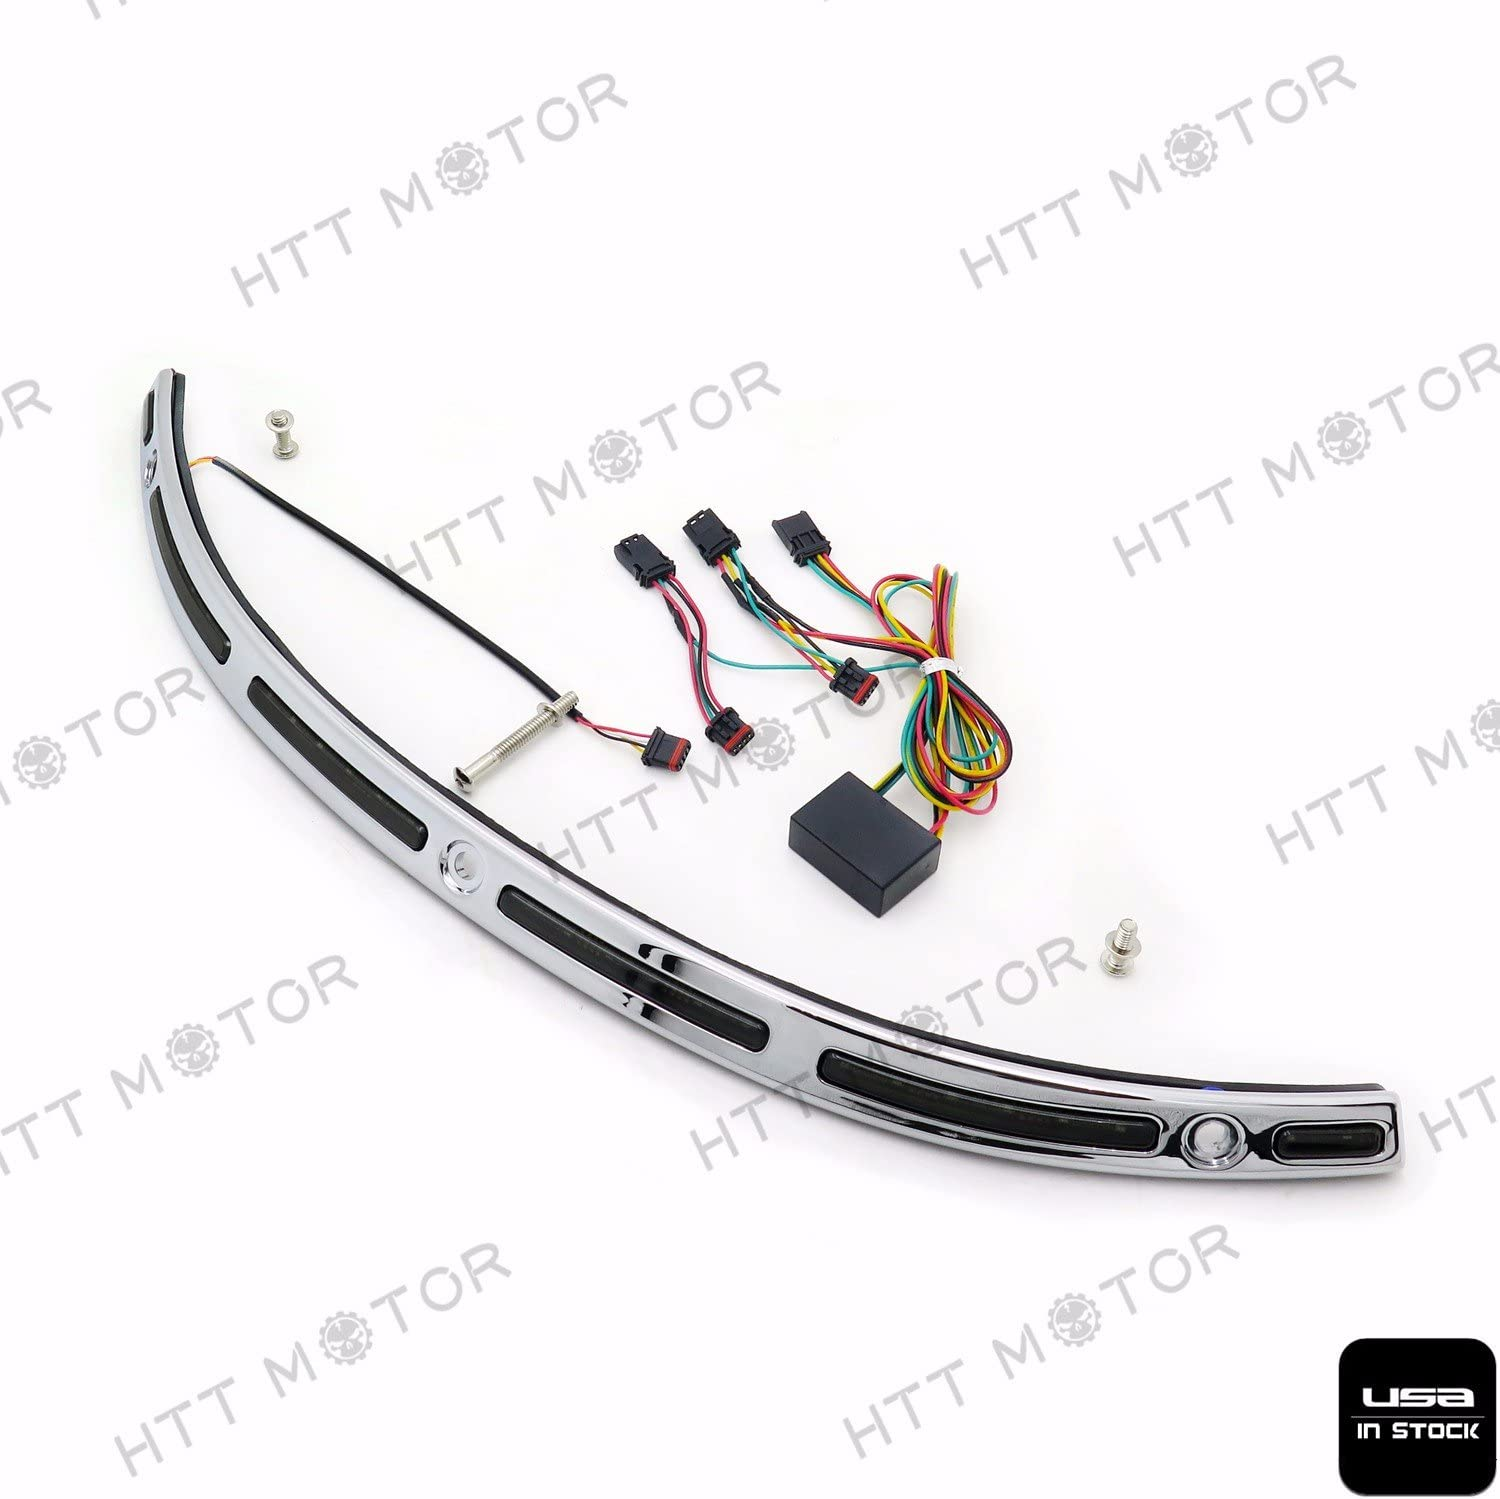 B076H13LYW XKMT-LED Illuminated Windshield Trim Compatible With Harley Touring Street Glide FLHX 14 15 16 17